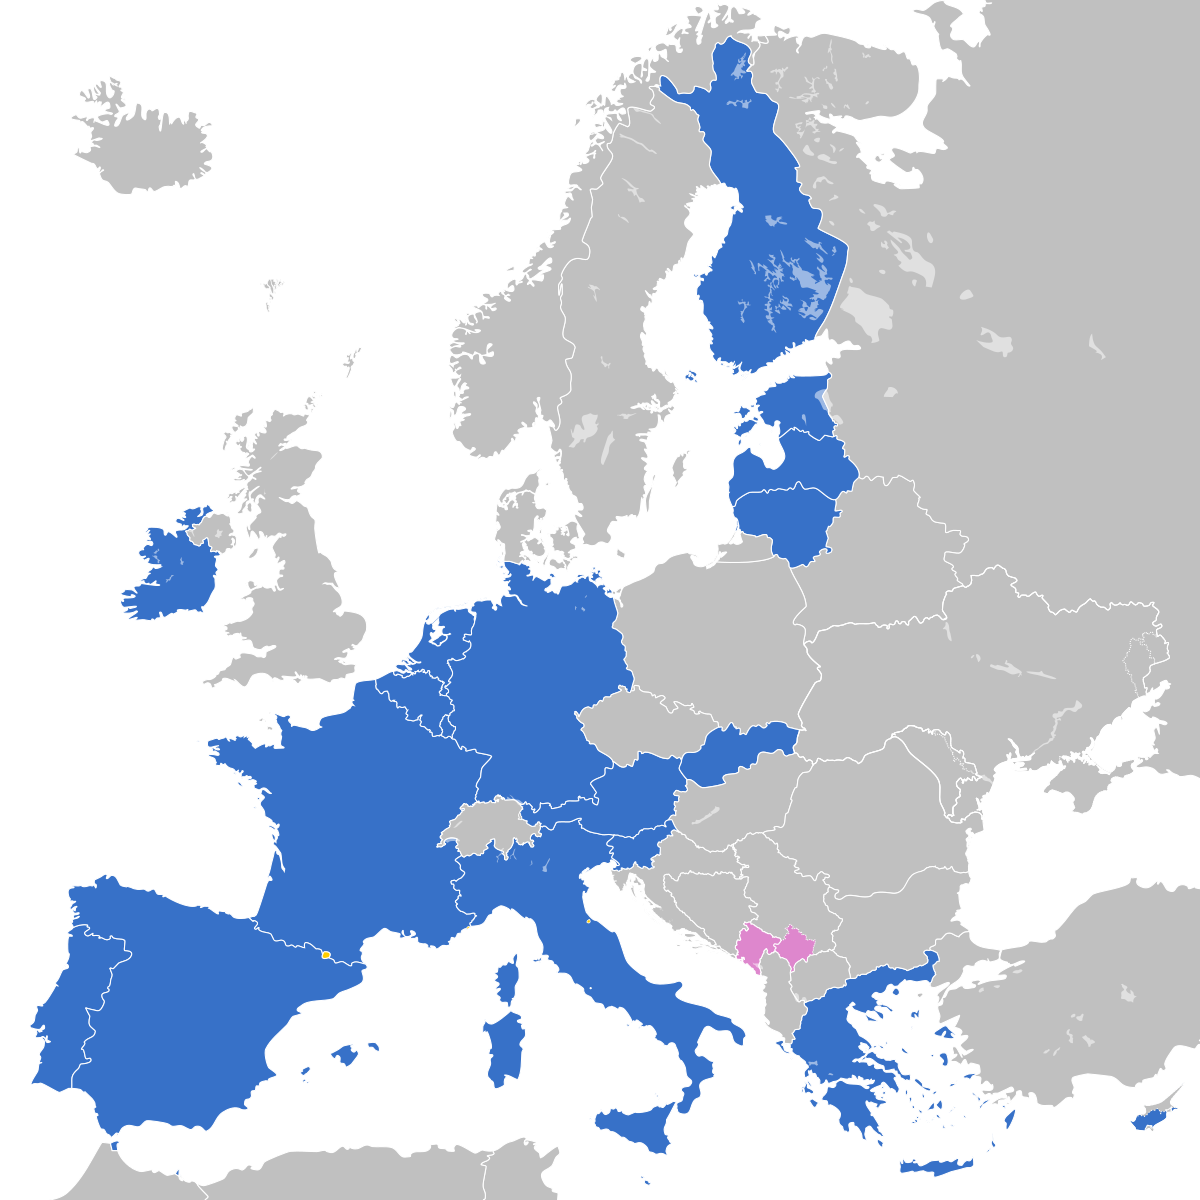 Countries using the Euro are in light blue.